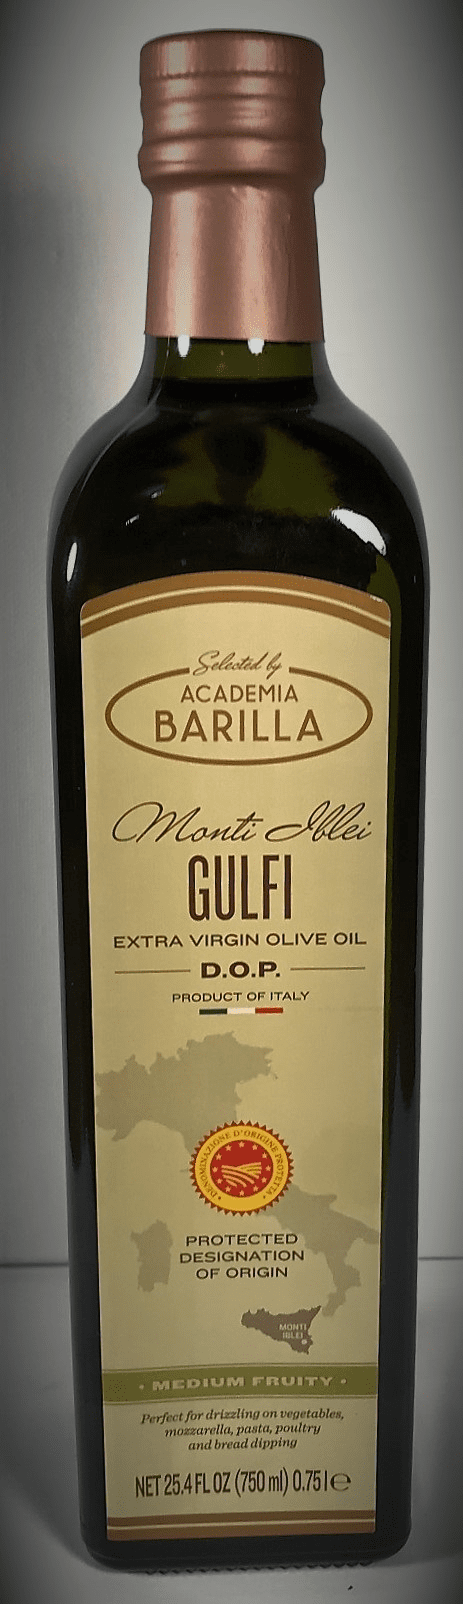 Accademia Barilla Extra Vergione Olive Oil Imported from Italy - 25.4 FL.OZ. Bottle